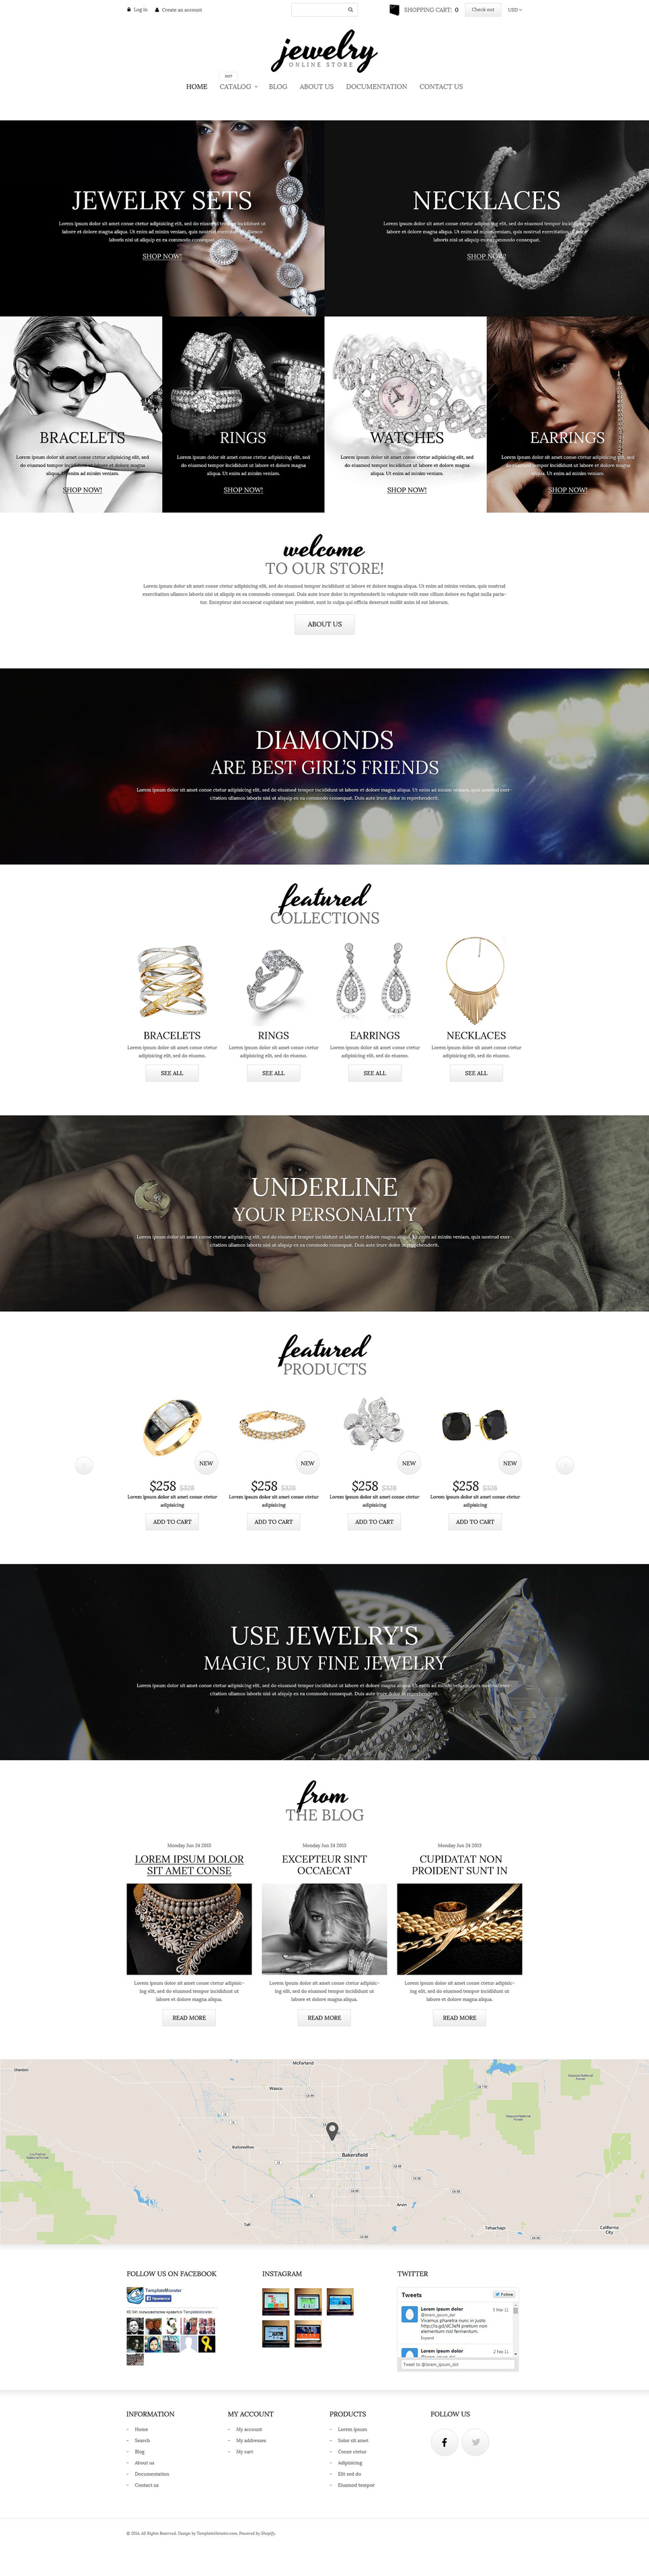 Charming Jewelry Shopify Theme (jewelry and accessories Shopify theme) Item Picture